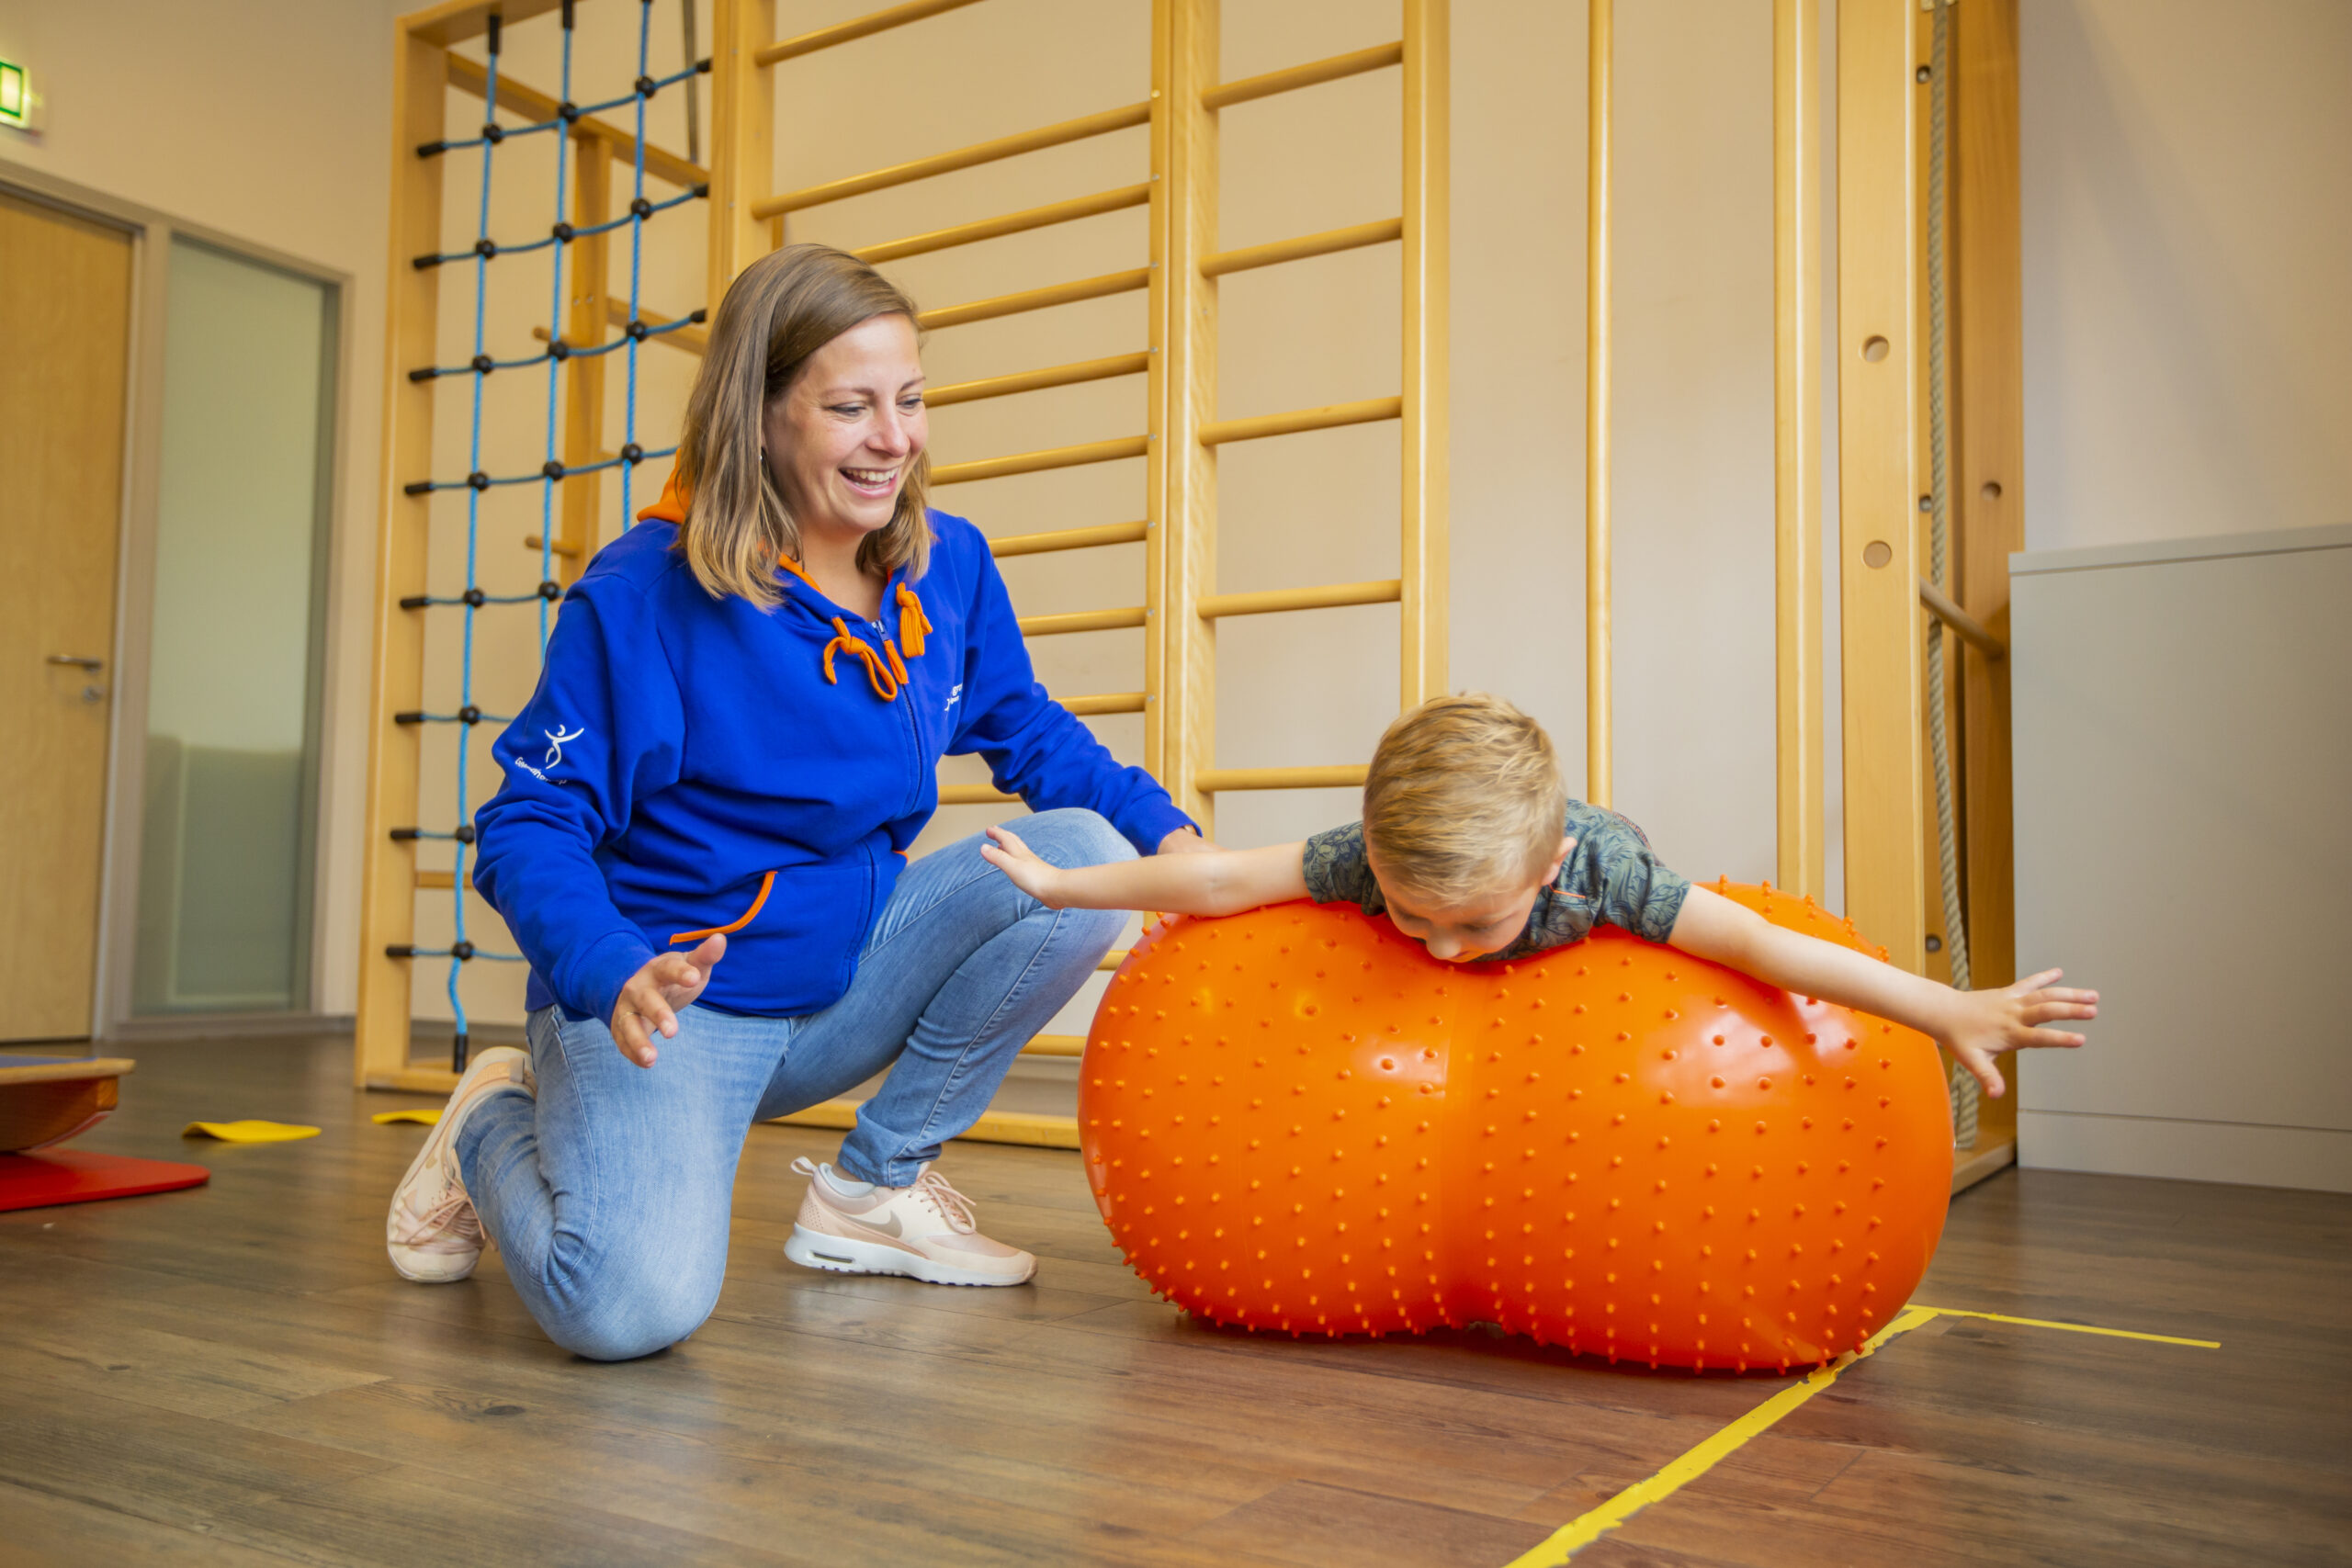 kinderbekkenfysiotherapie kinderfysiotherapie